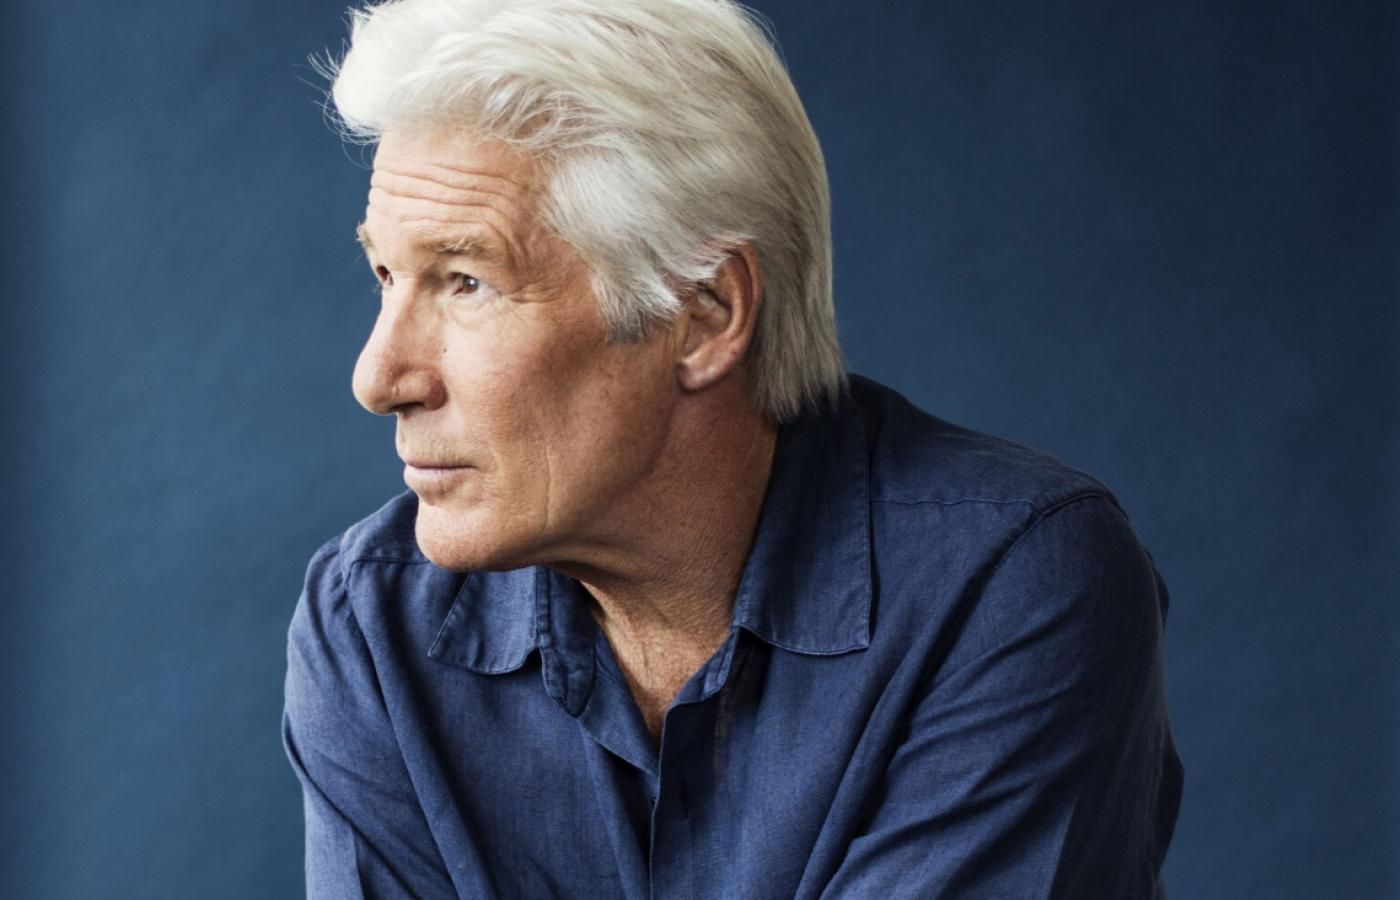 Richard Gere (fot. East News)